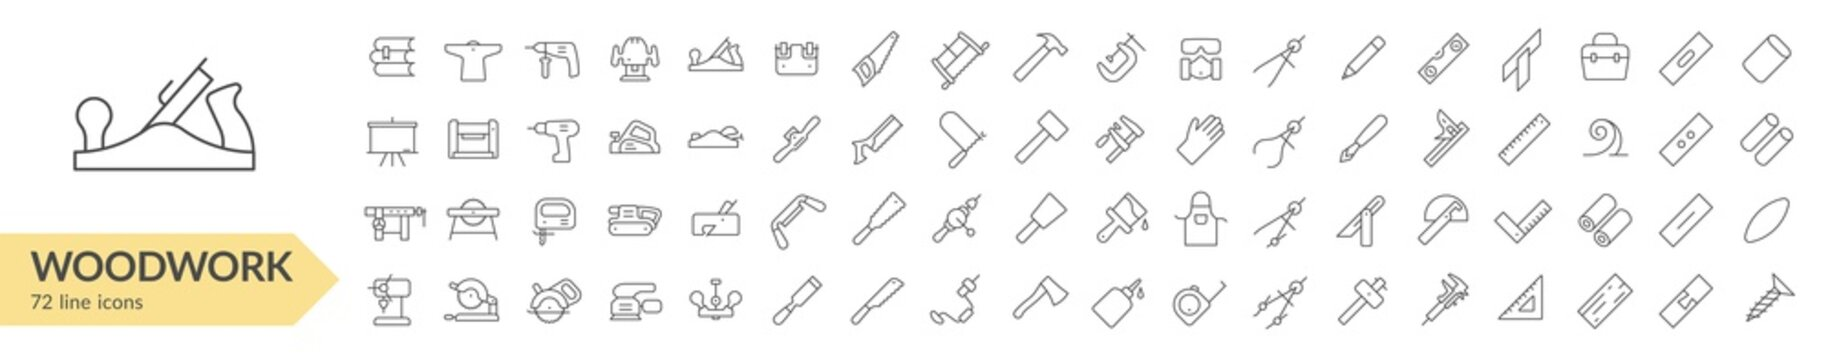 Woodwork tools line icon set. Isolated signs on white background. Vector illustration. Collection